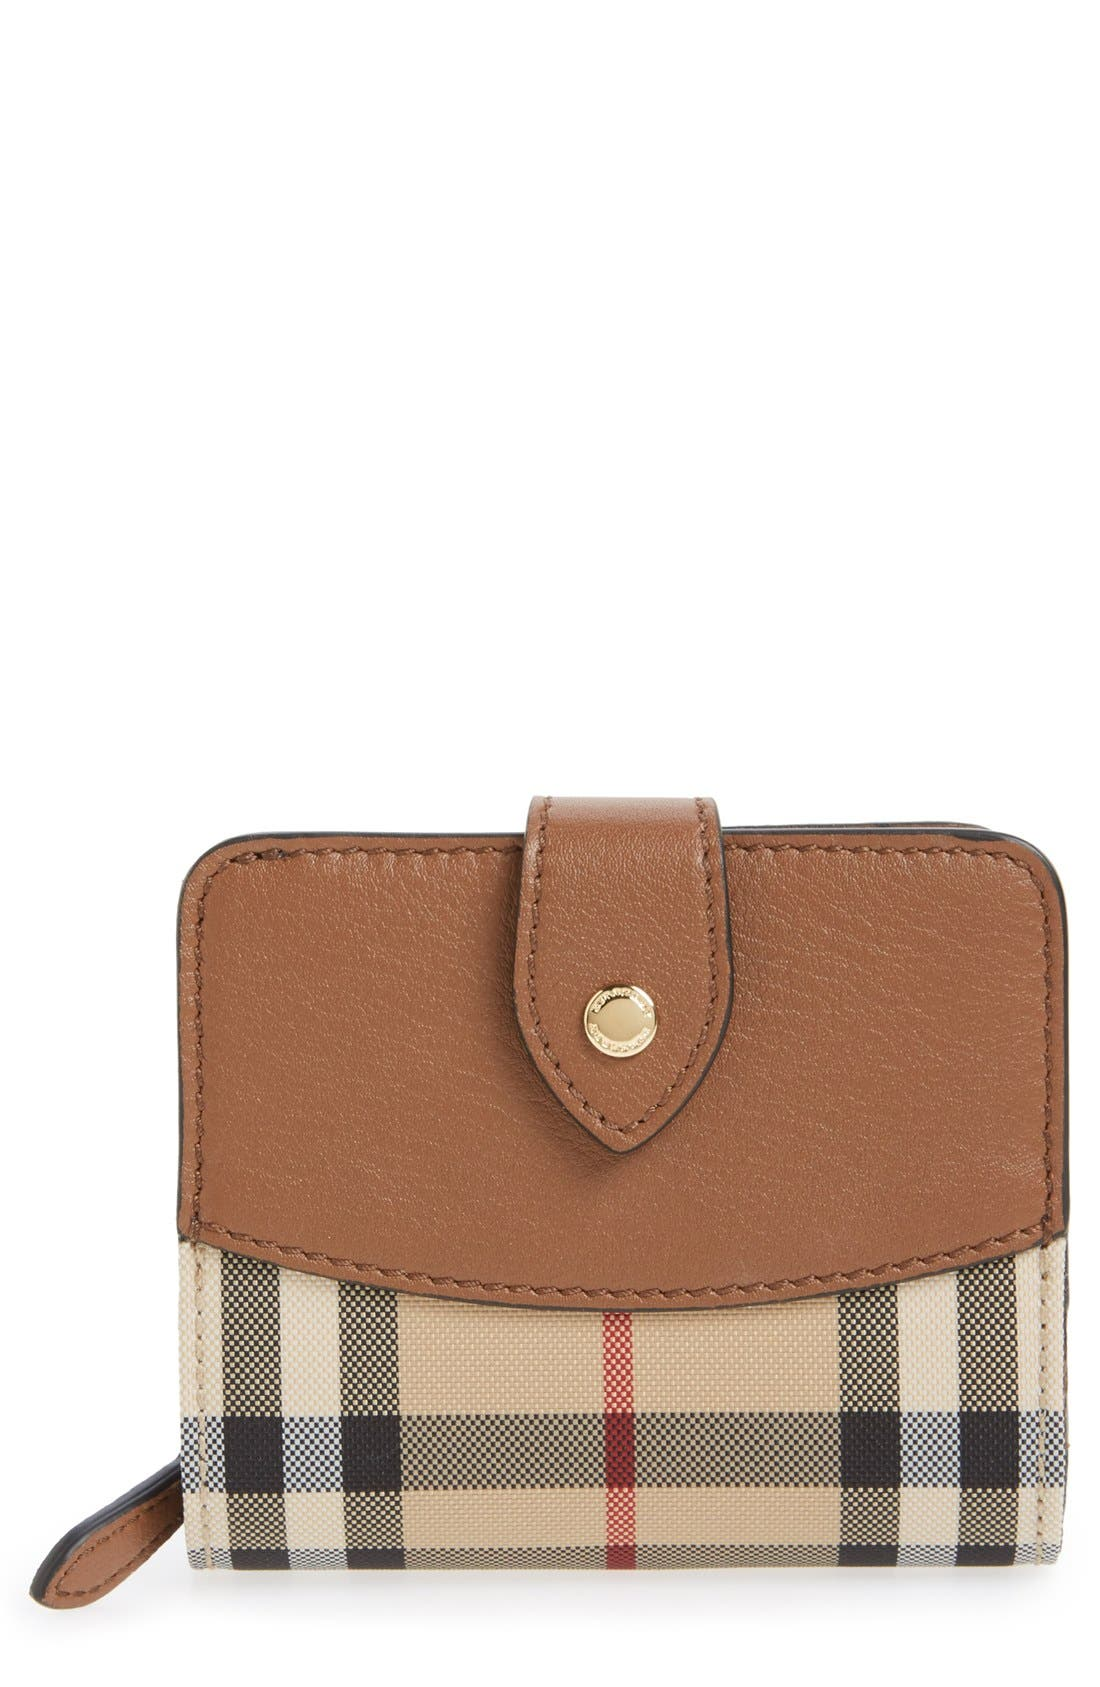 Burberry 'Finsbury' Horseferry Check Wallet